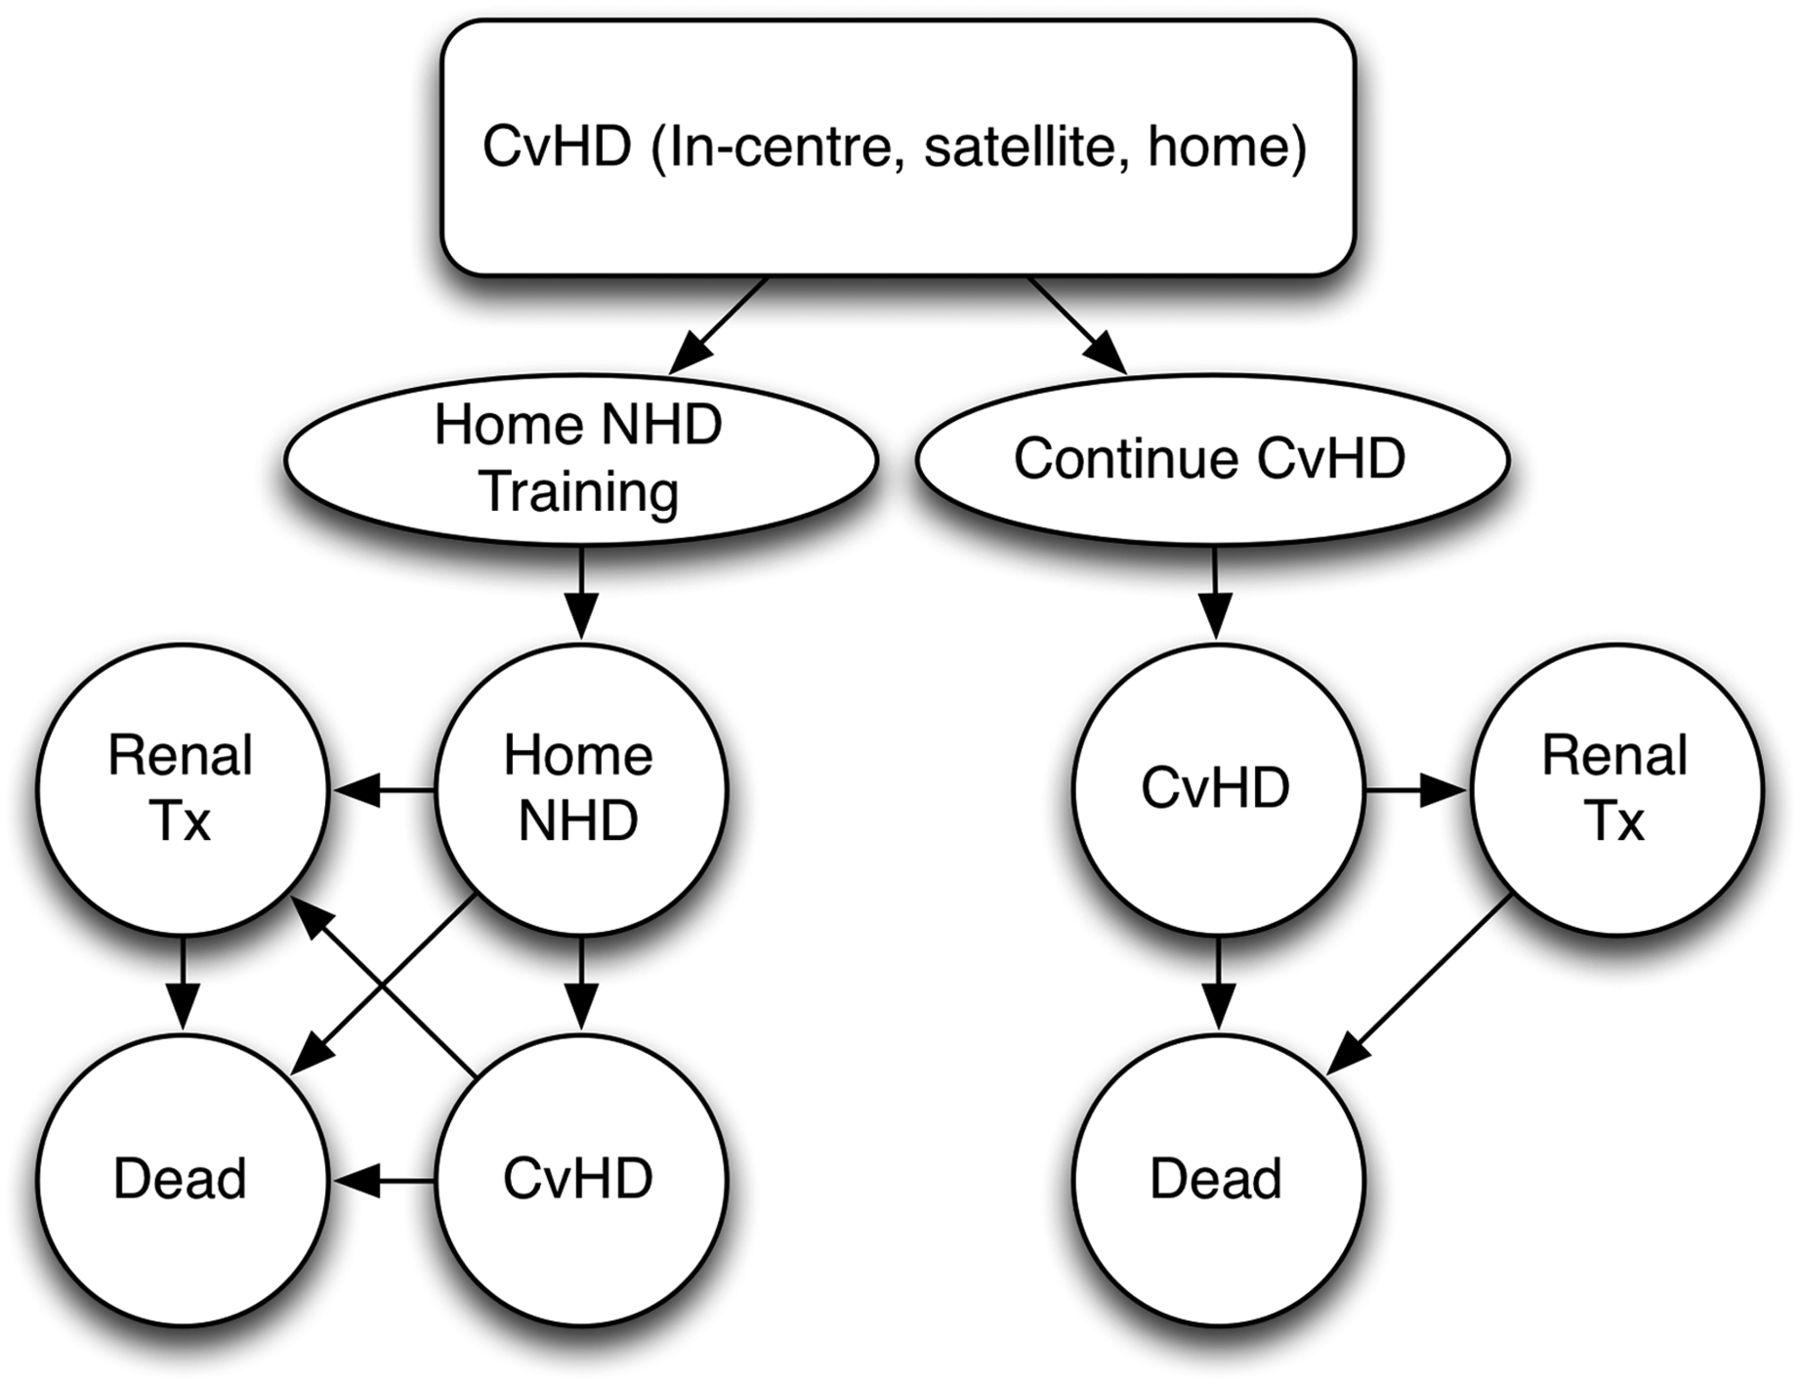 Economic Evaluation Of Frequent Home Nocturnal Hemodialysis Based On A Randomized Controlled